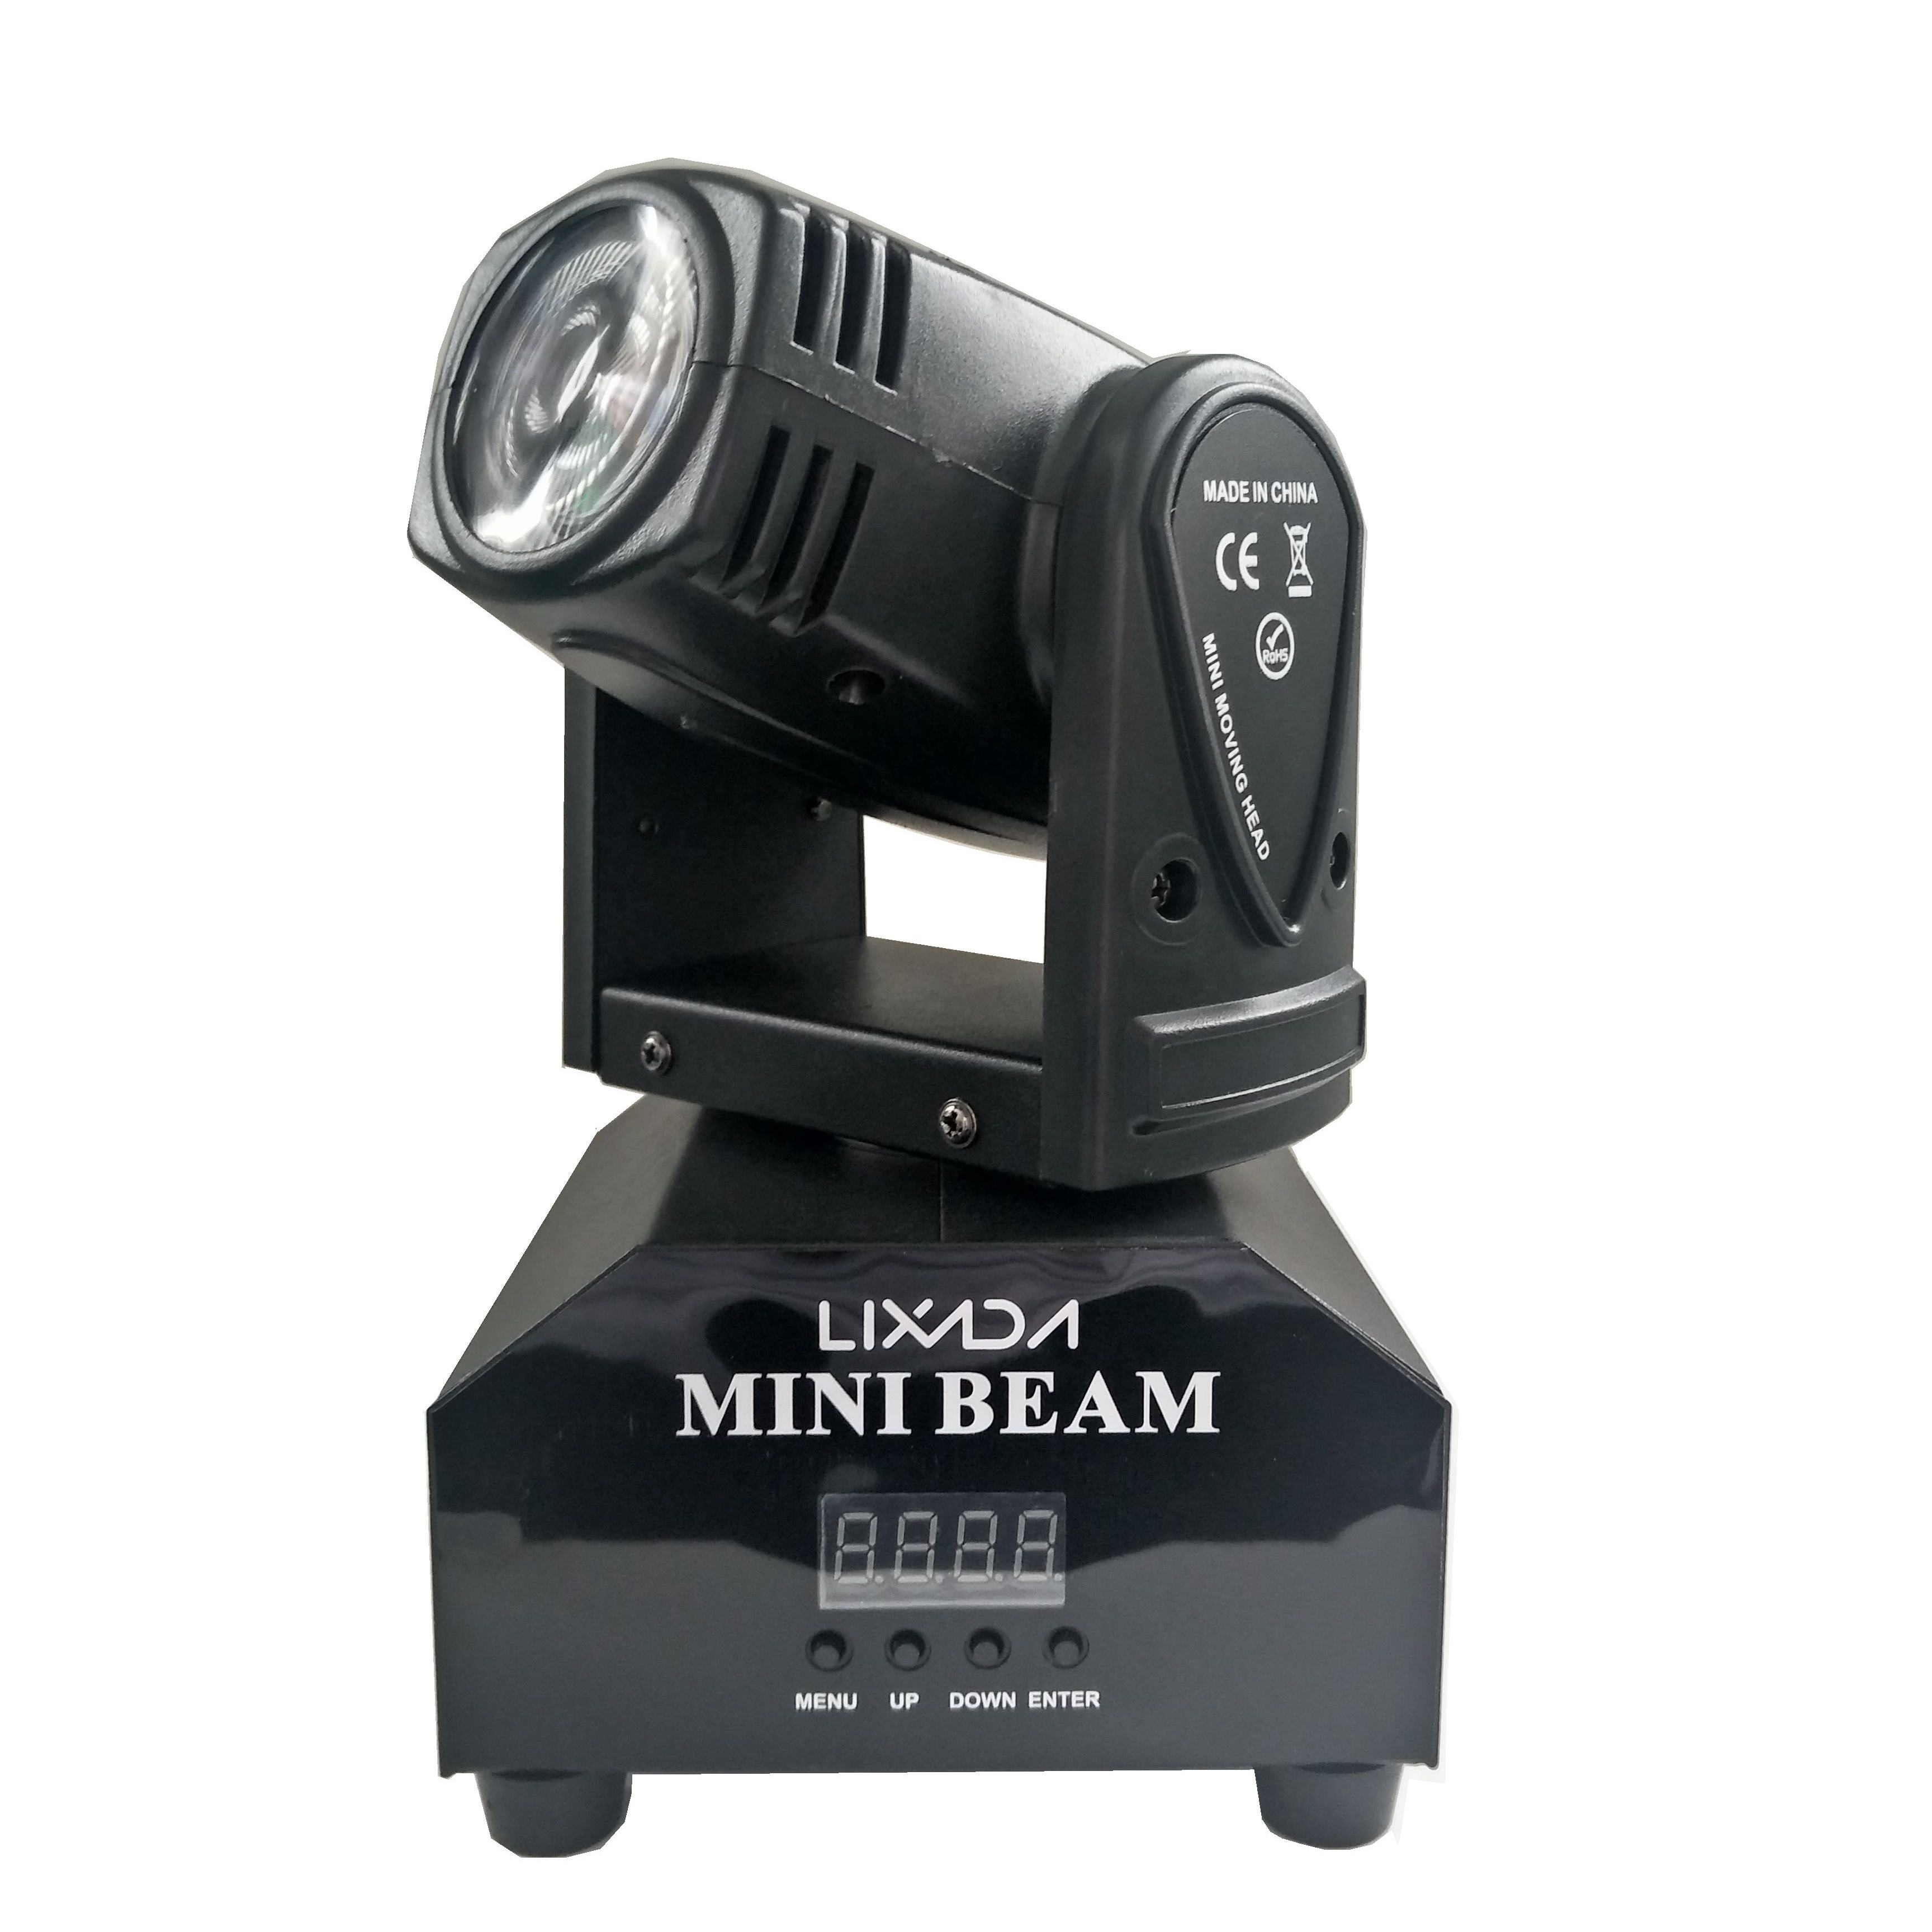 Mini beam rgbw led klein moving head licht beam moving head stage light